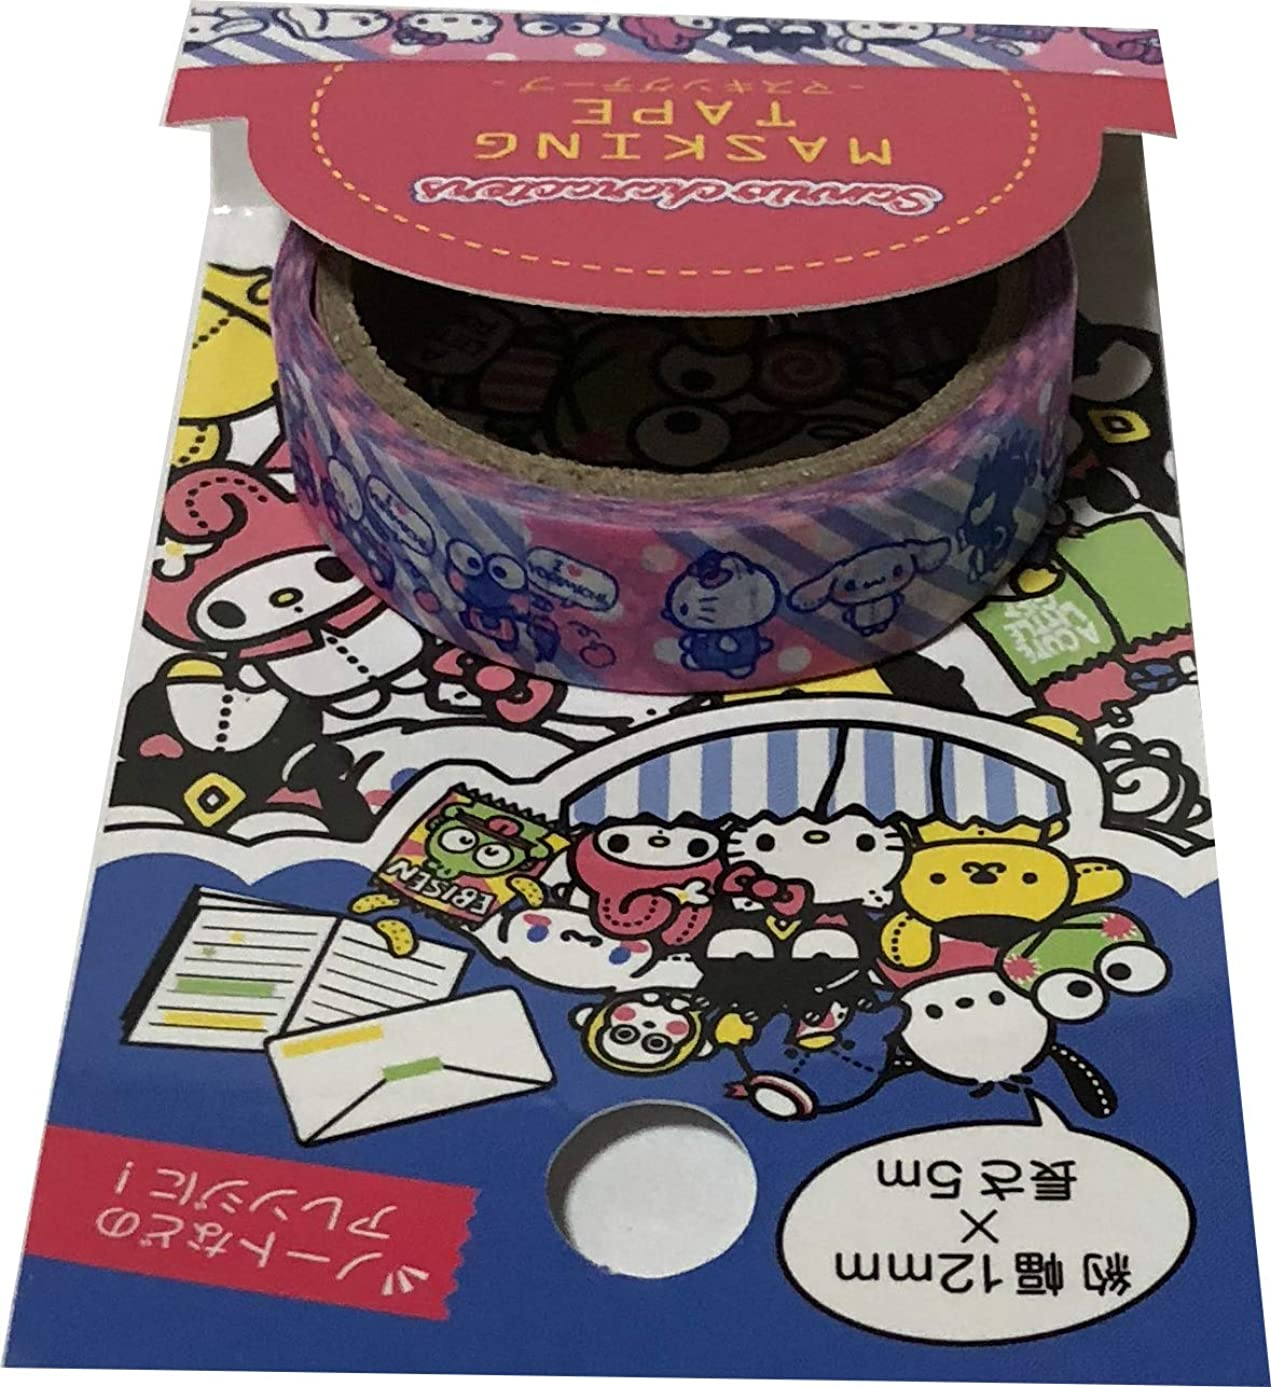 Sanrio Characters Masking Tape Length 5m Width1.2 cm Sticker Decoration Arts, Crafts & Sewing Stationery Japan (March with Everyone)